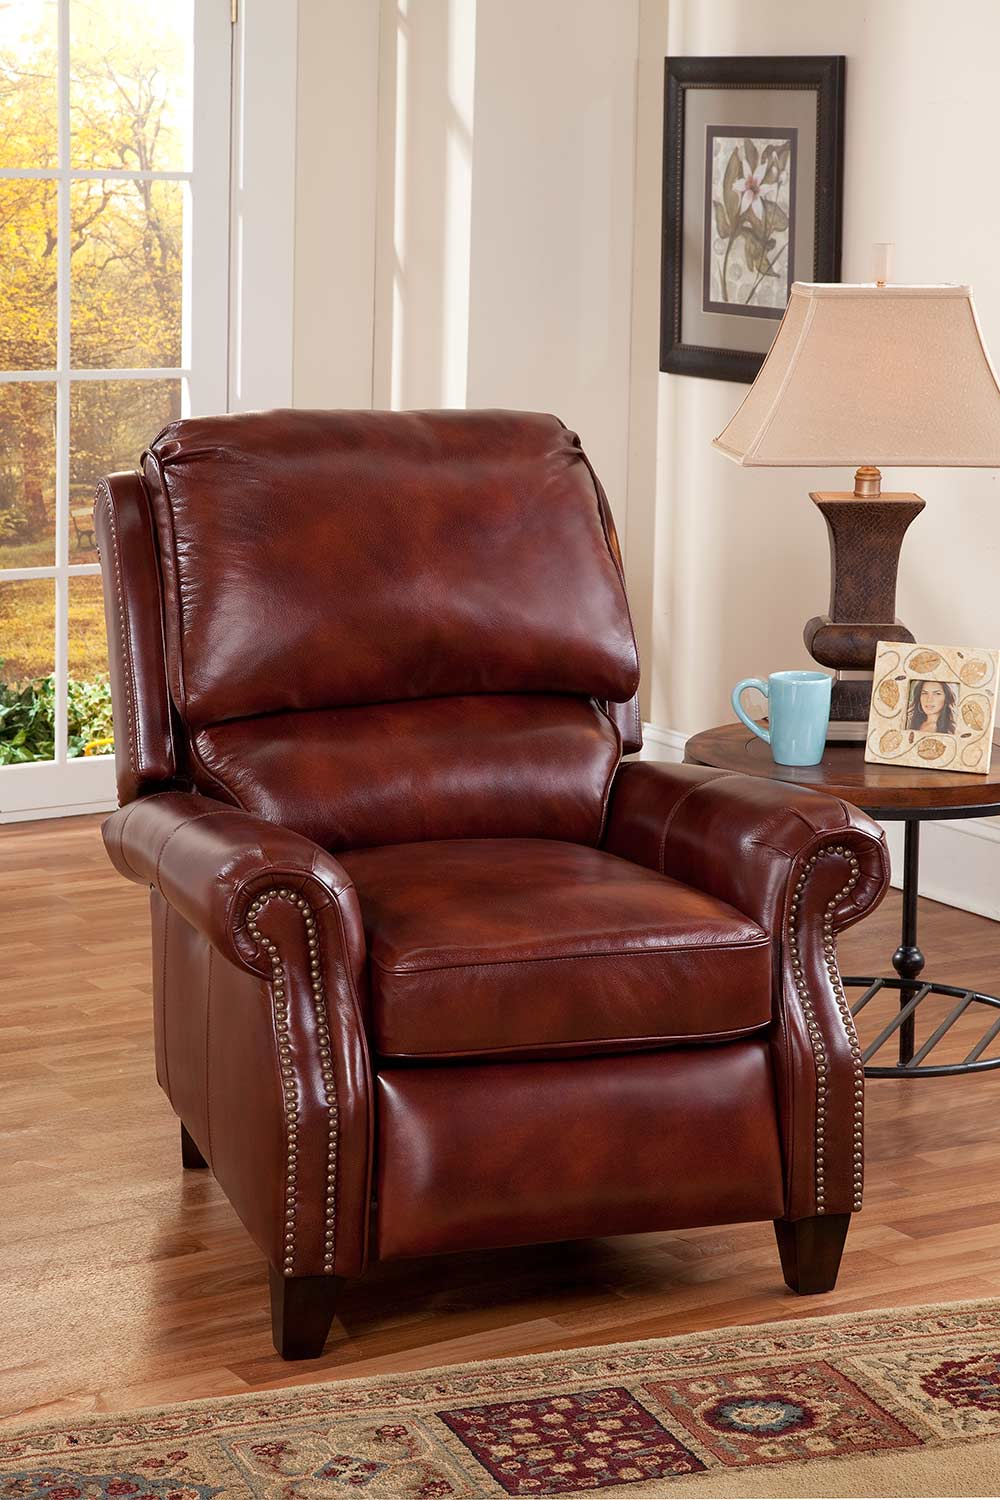 Barcalounger Churchill Power Recliner Chair - Art Burl/All Leather